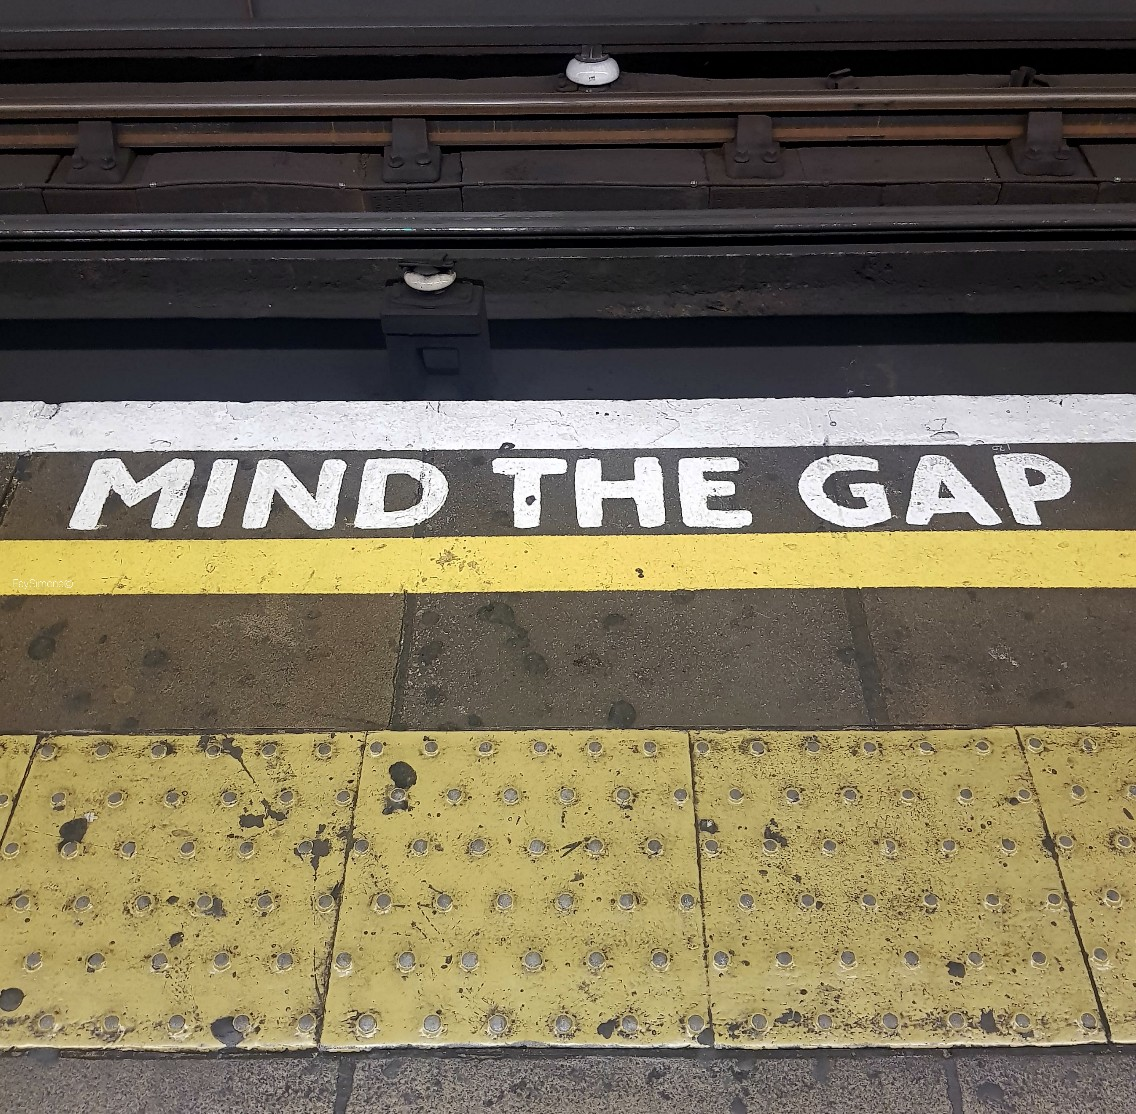 International Women's Day 2018, International Women's Day, Woman's History Month, Mind The Gap, London Underground